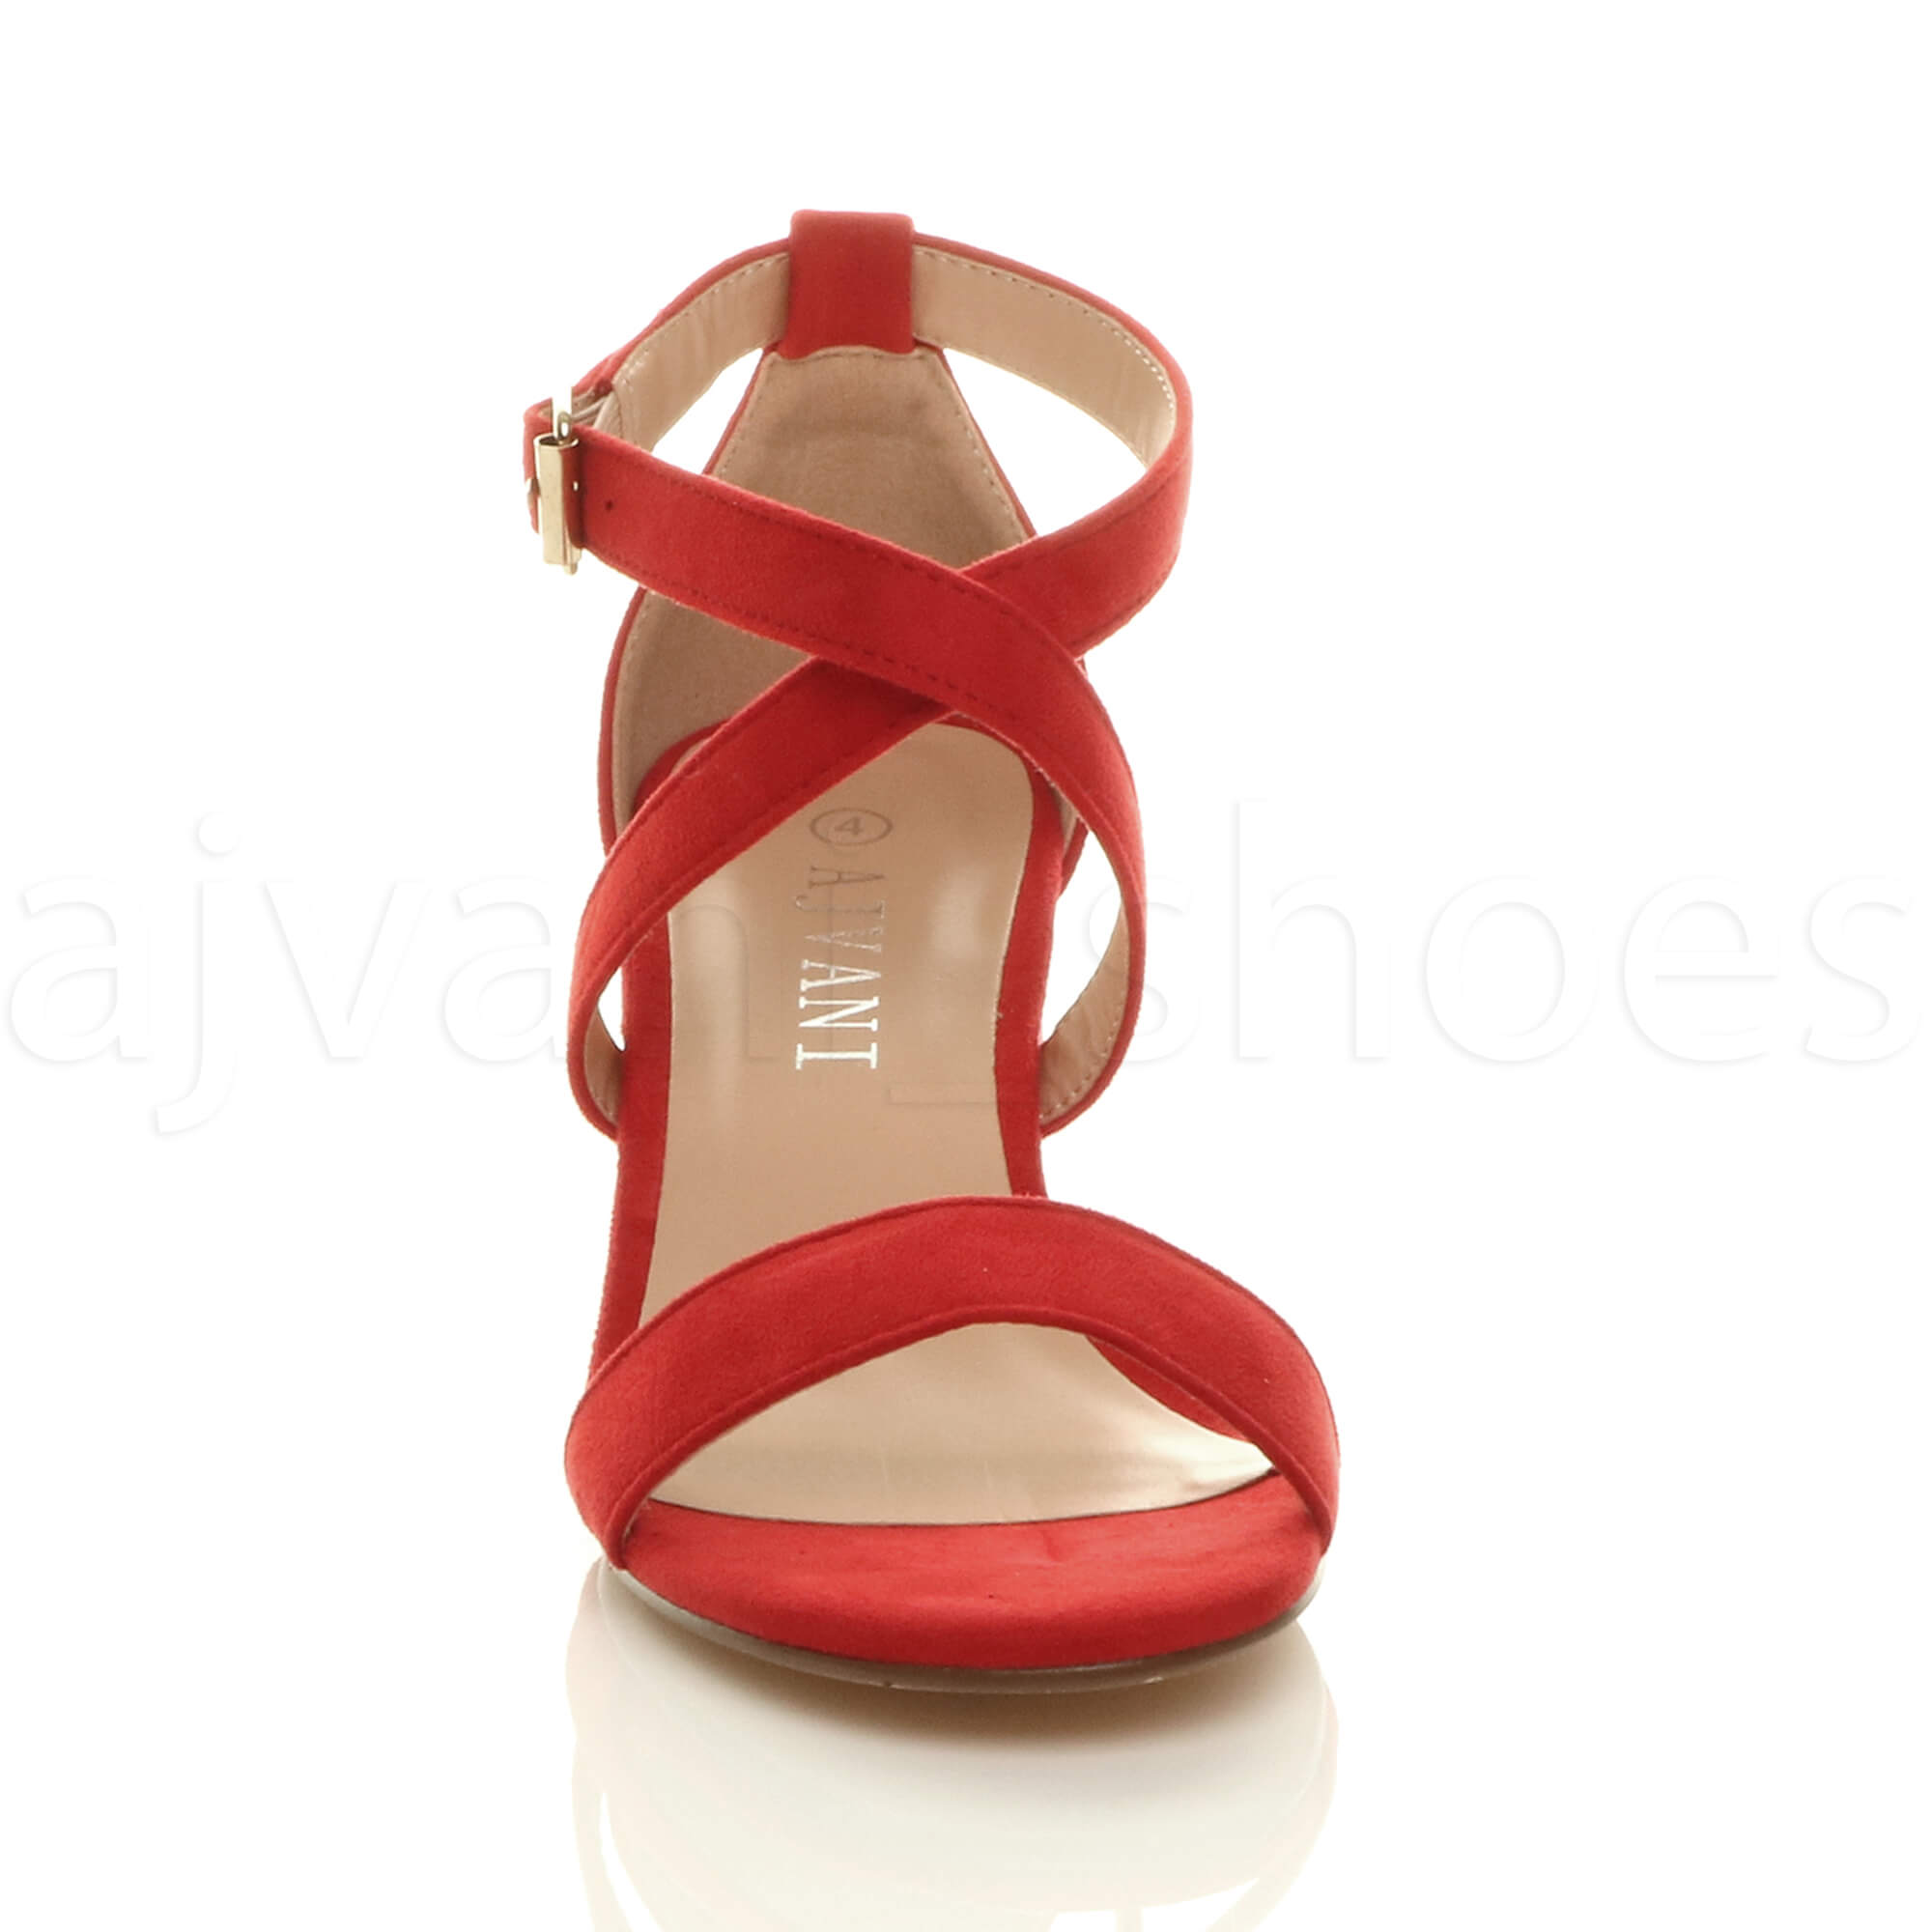 WOMENS-LADIES-MID-LOW-BLOCK-HEEL-CROSS-STRAPS-PARTY-STRAPPY-SANDALS-SHOES-SIZE thumbnail 66